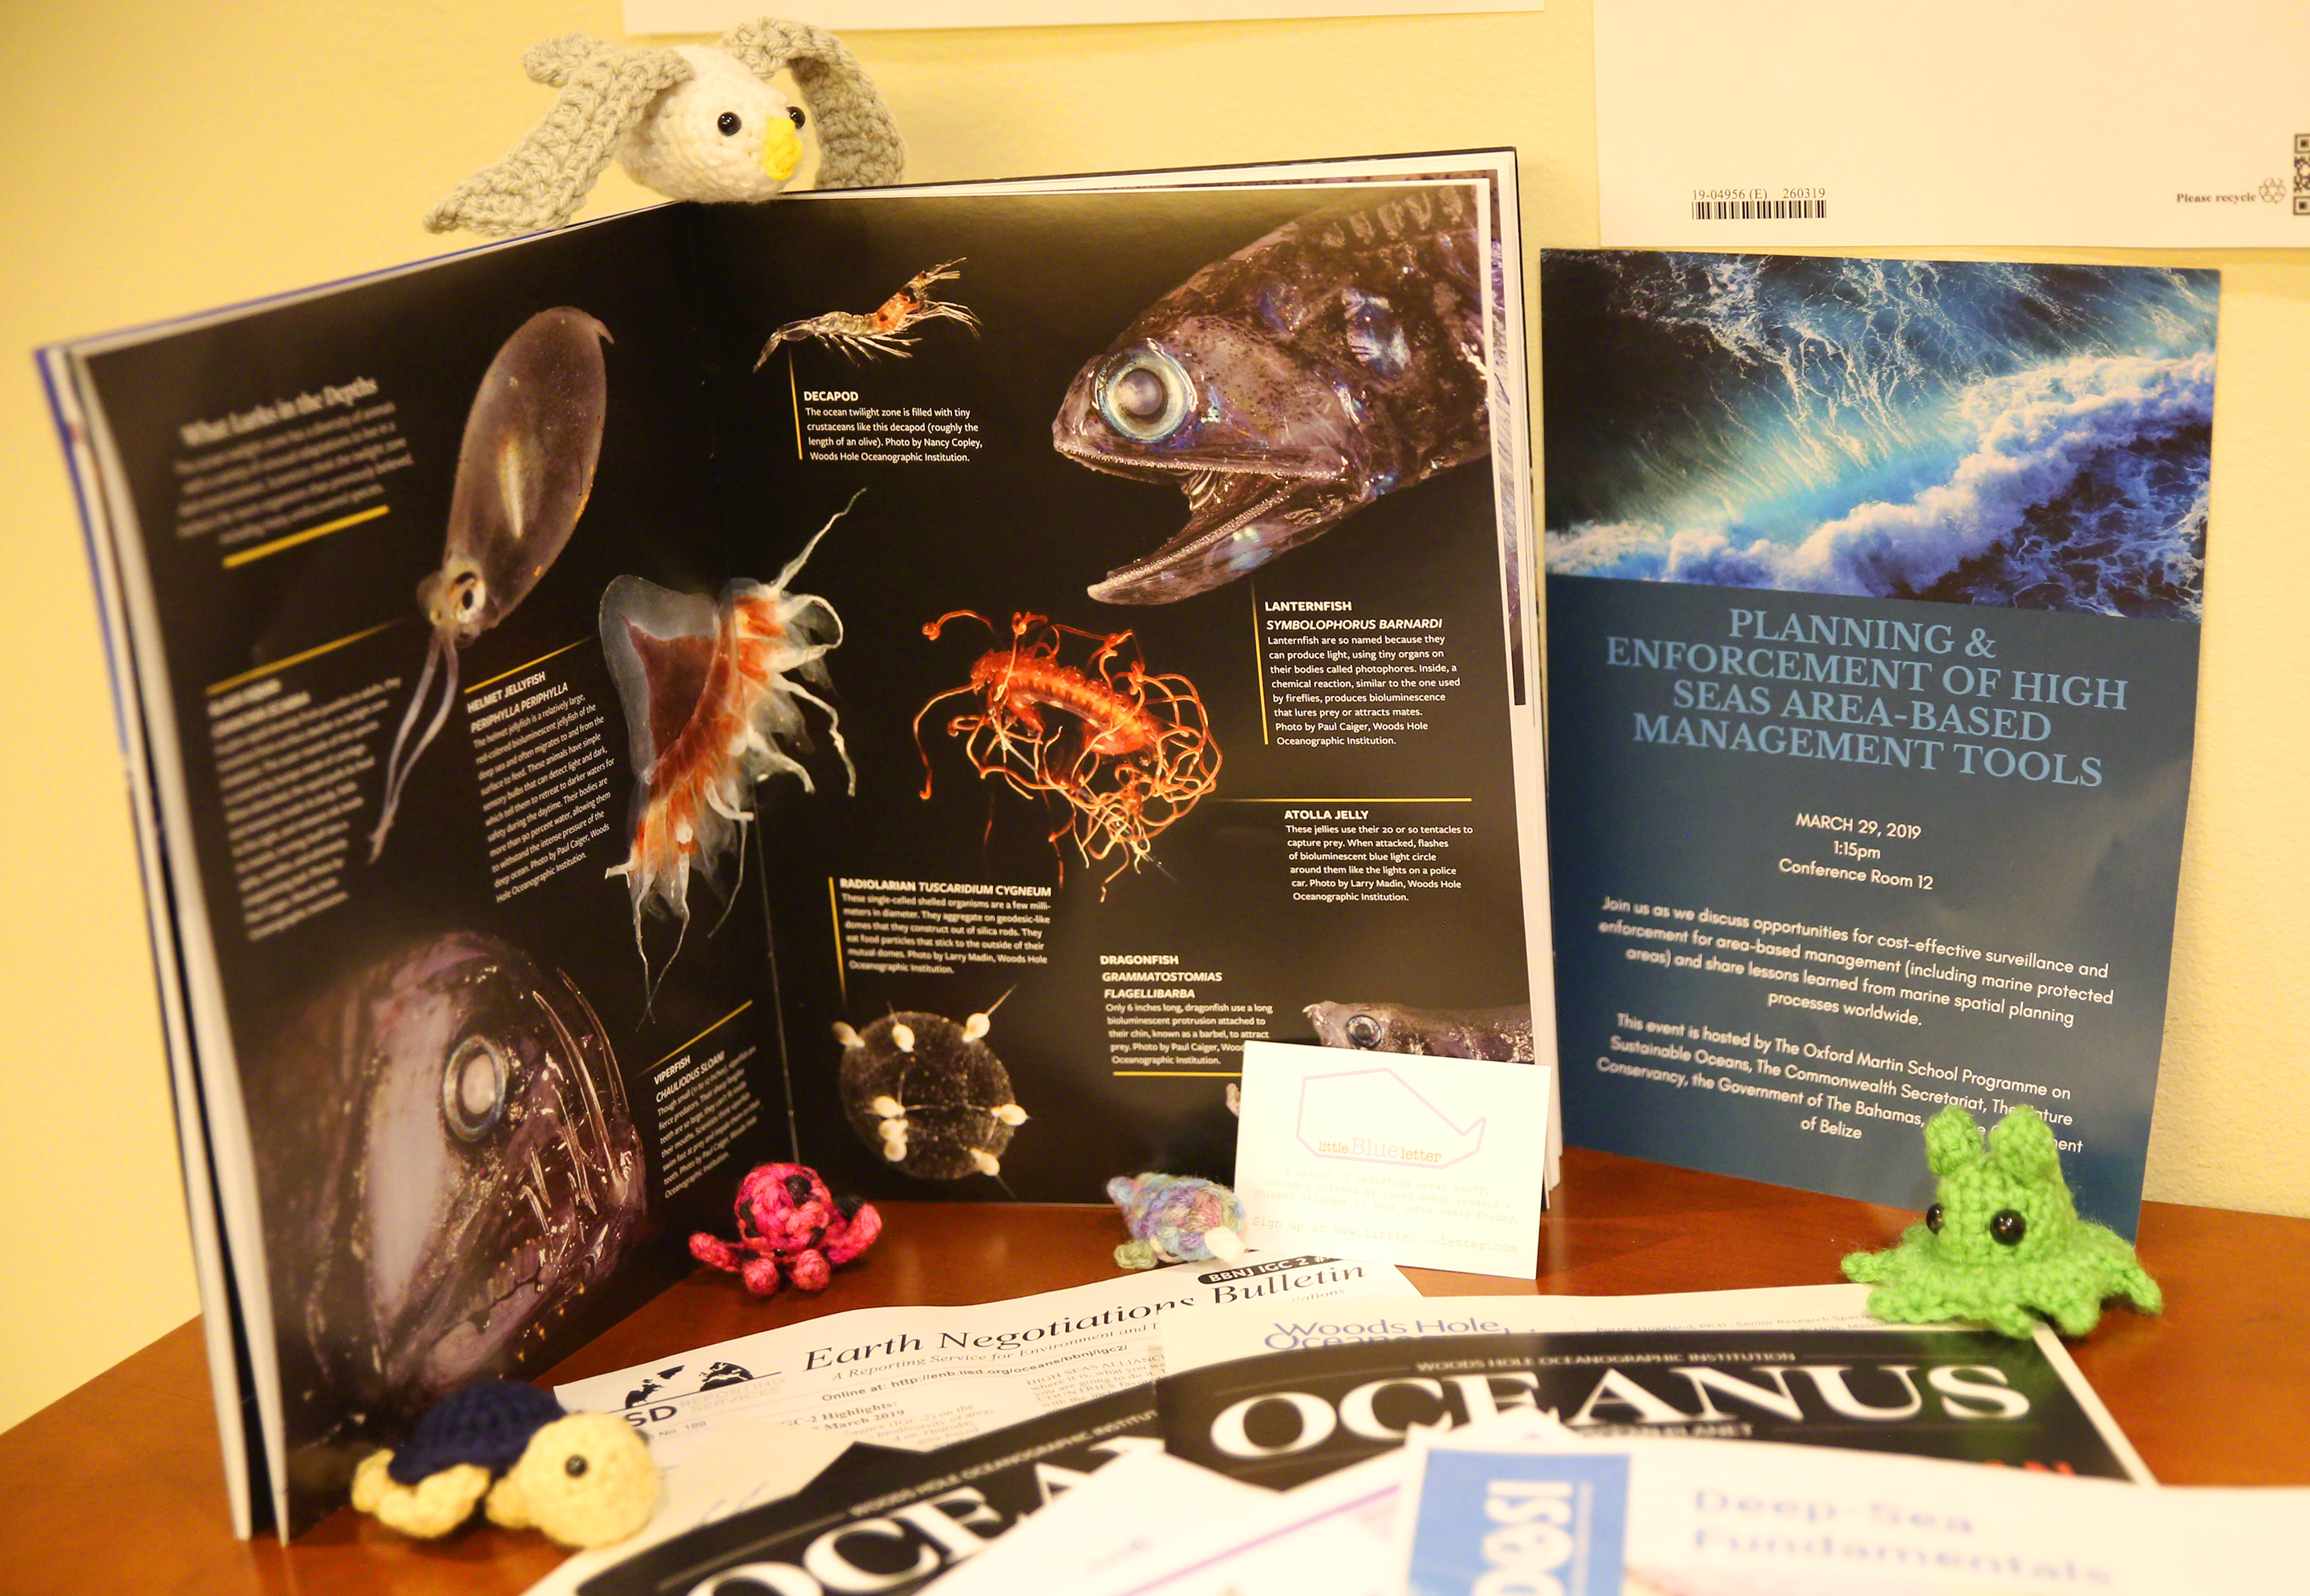 Over 200 copies of WHOI's Oceanus Magazine Twilight Zone special issue were distributed at the BBNJ second session conference. Each magazine was complemented by a cover letter tying the twilight zone to specific BBNJ topic areas. Photo by IISD/ENB | Francis Dejon